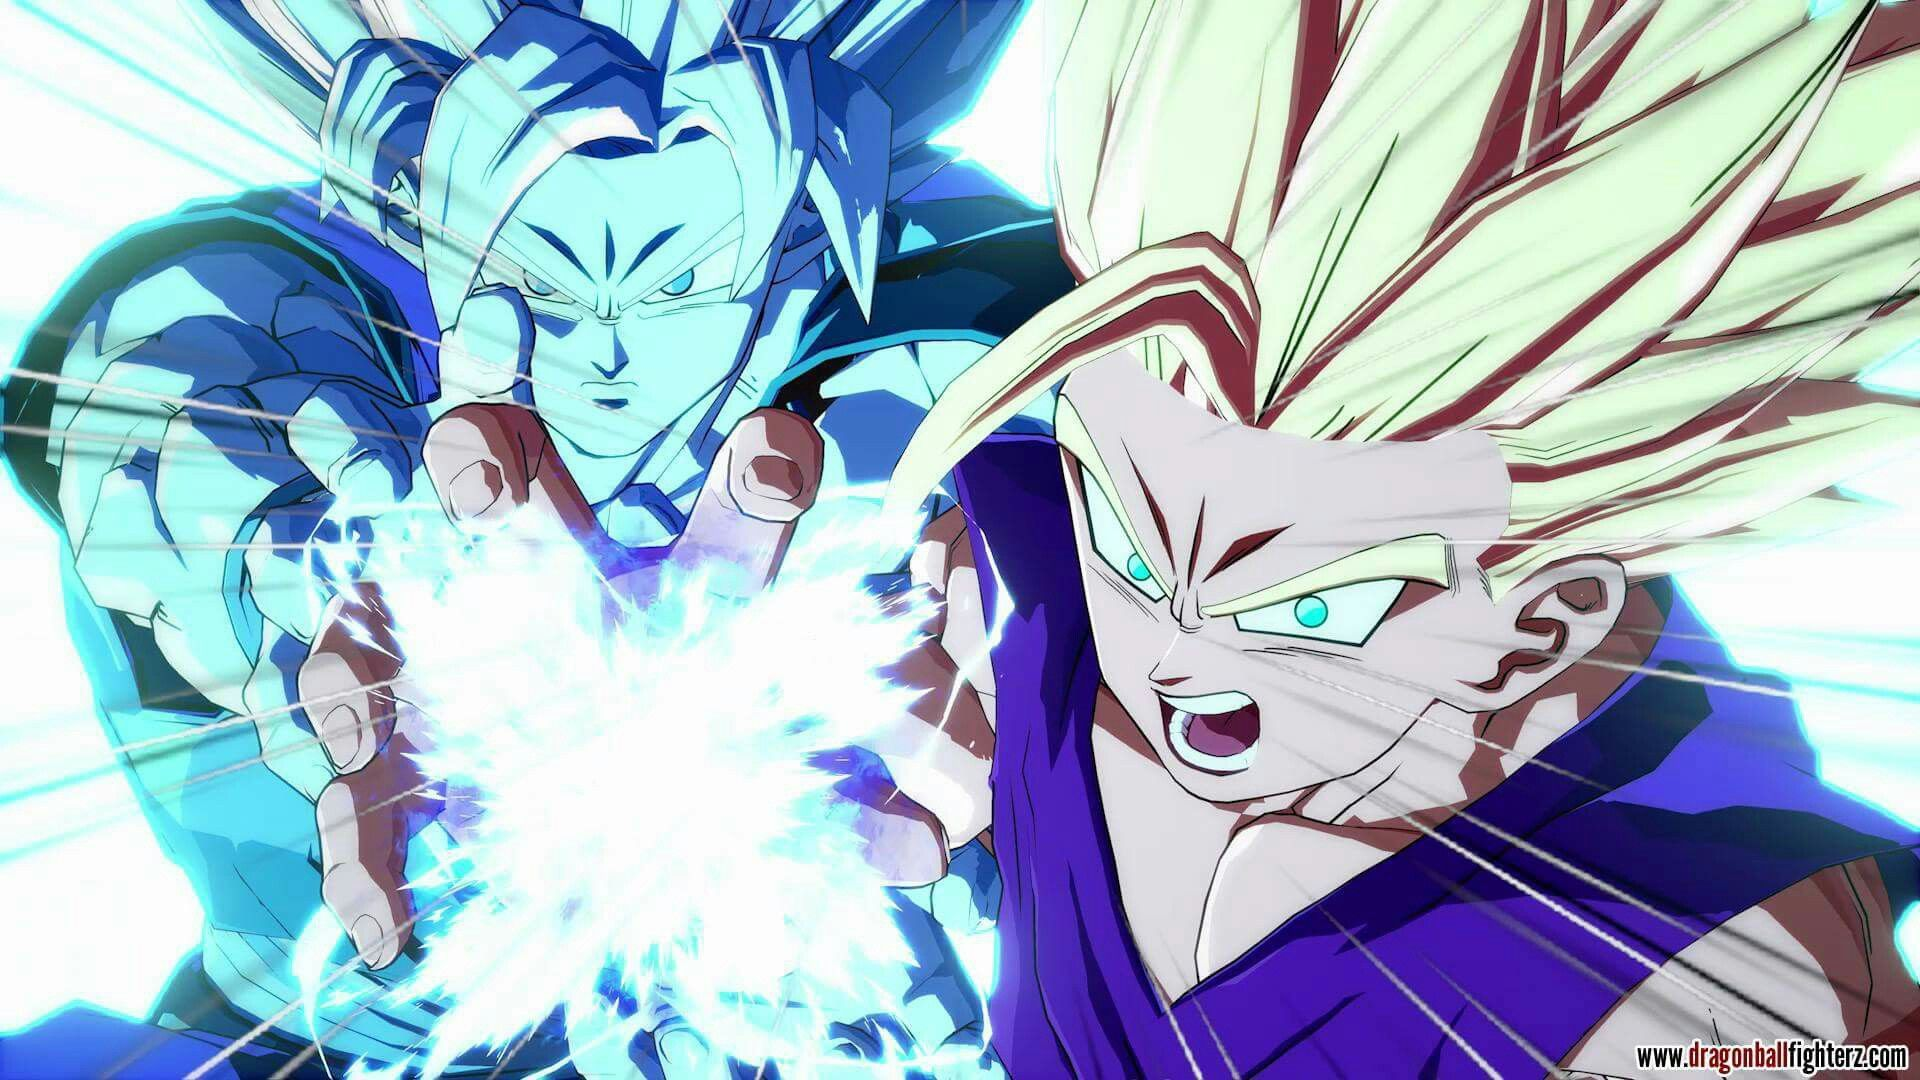 Father And Son Kamehameha From The New Game Dragon Ball Fighter Z Dragon Ball Wallpapers Anime Japanese Dragon